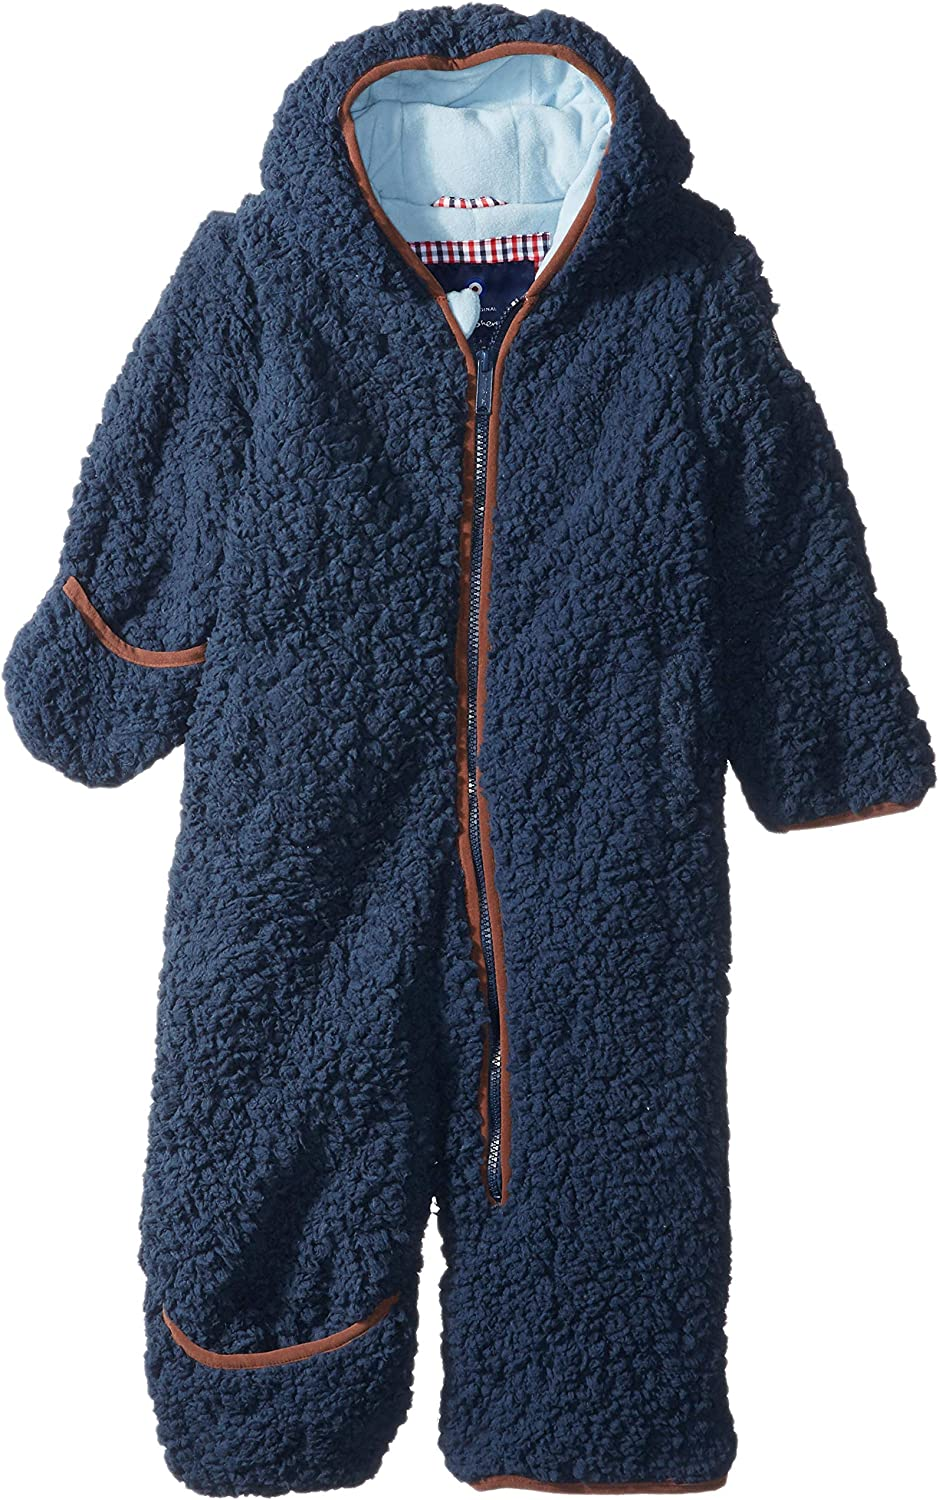 Ben Sherman Baby Jungen Pram More Styles Available Daunenalternative Jacke Navy 6 9 Monate Bekleidung